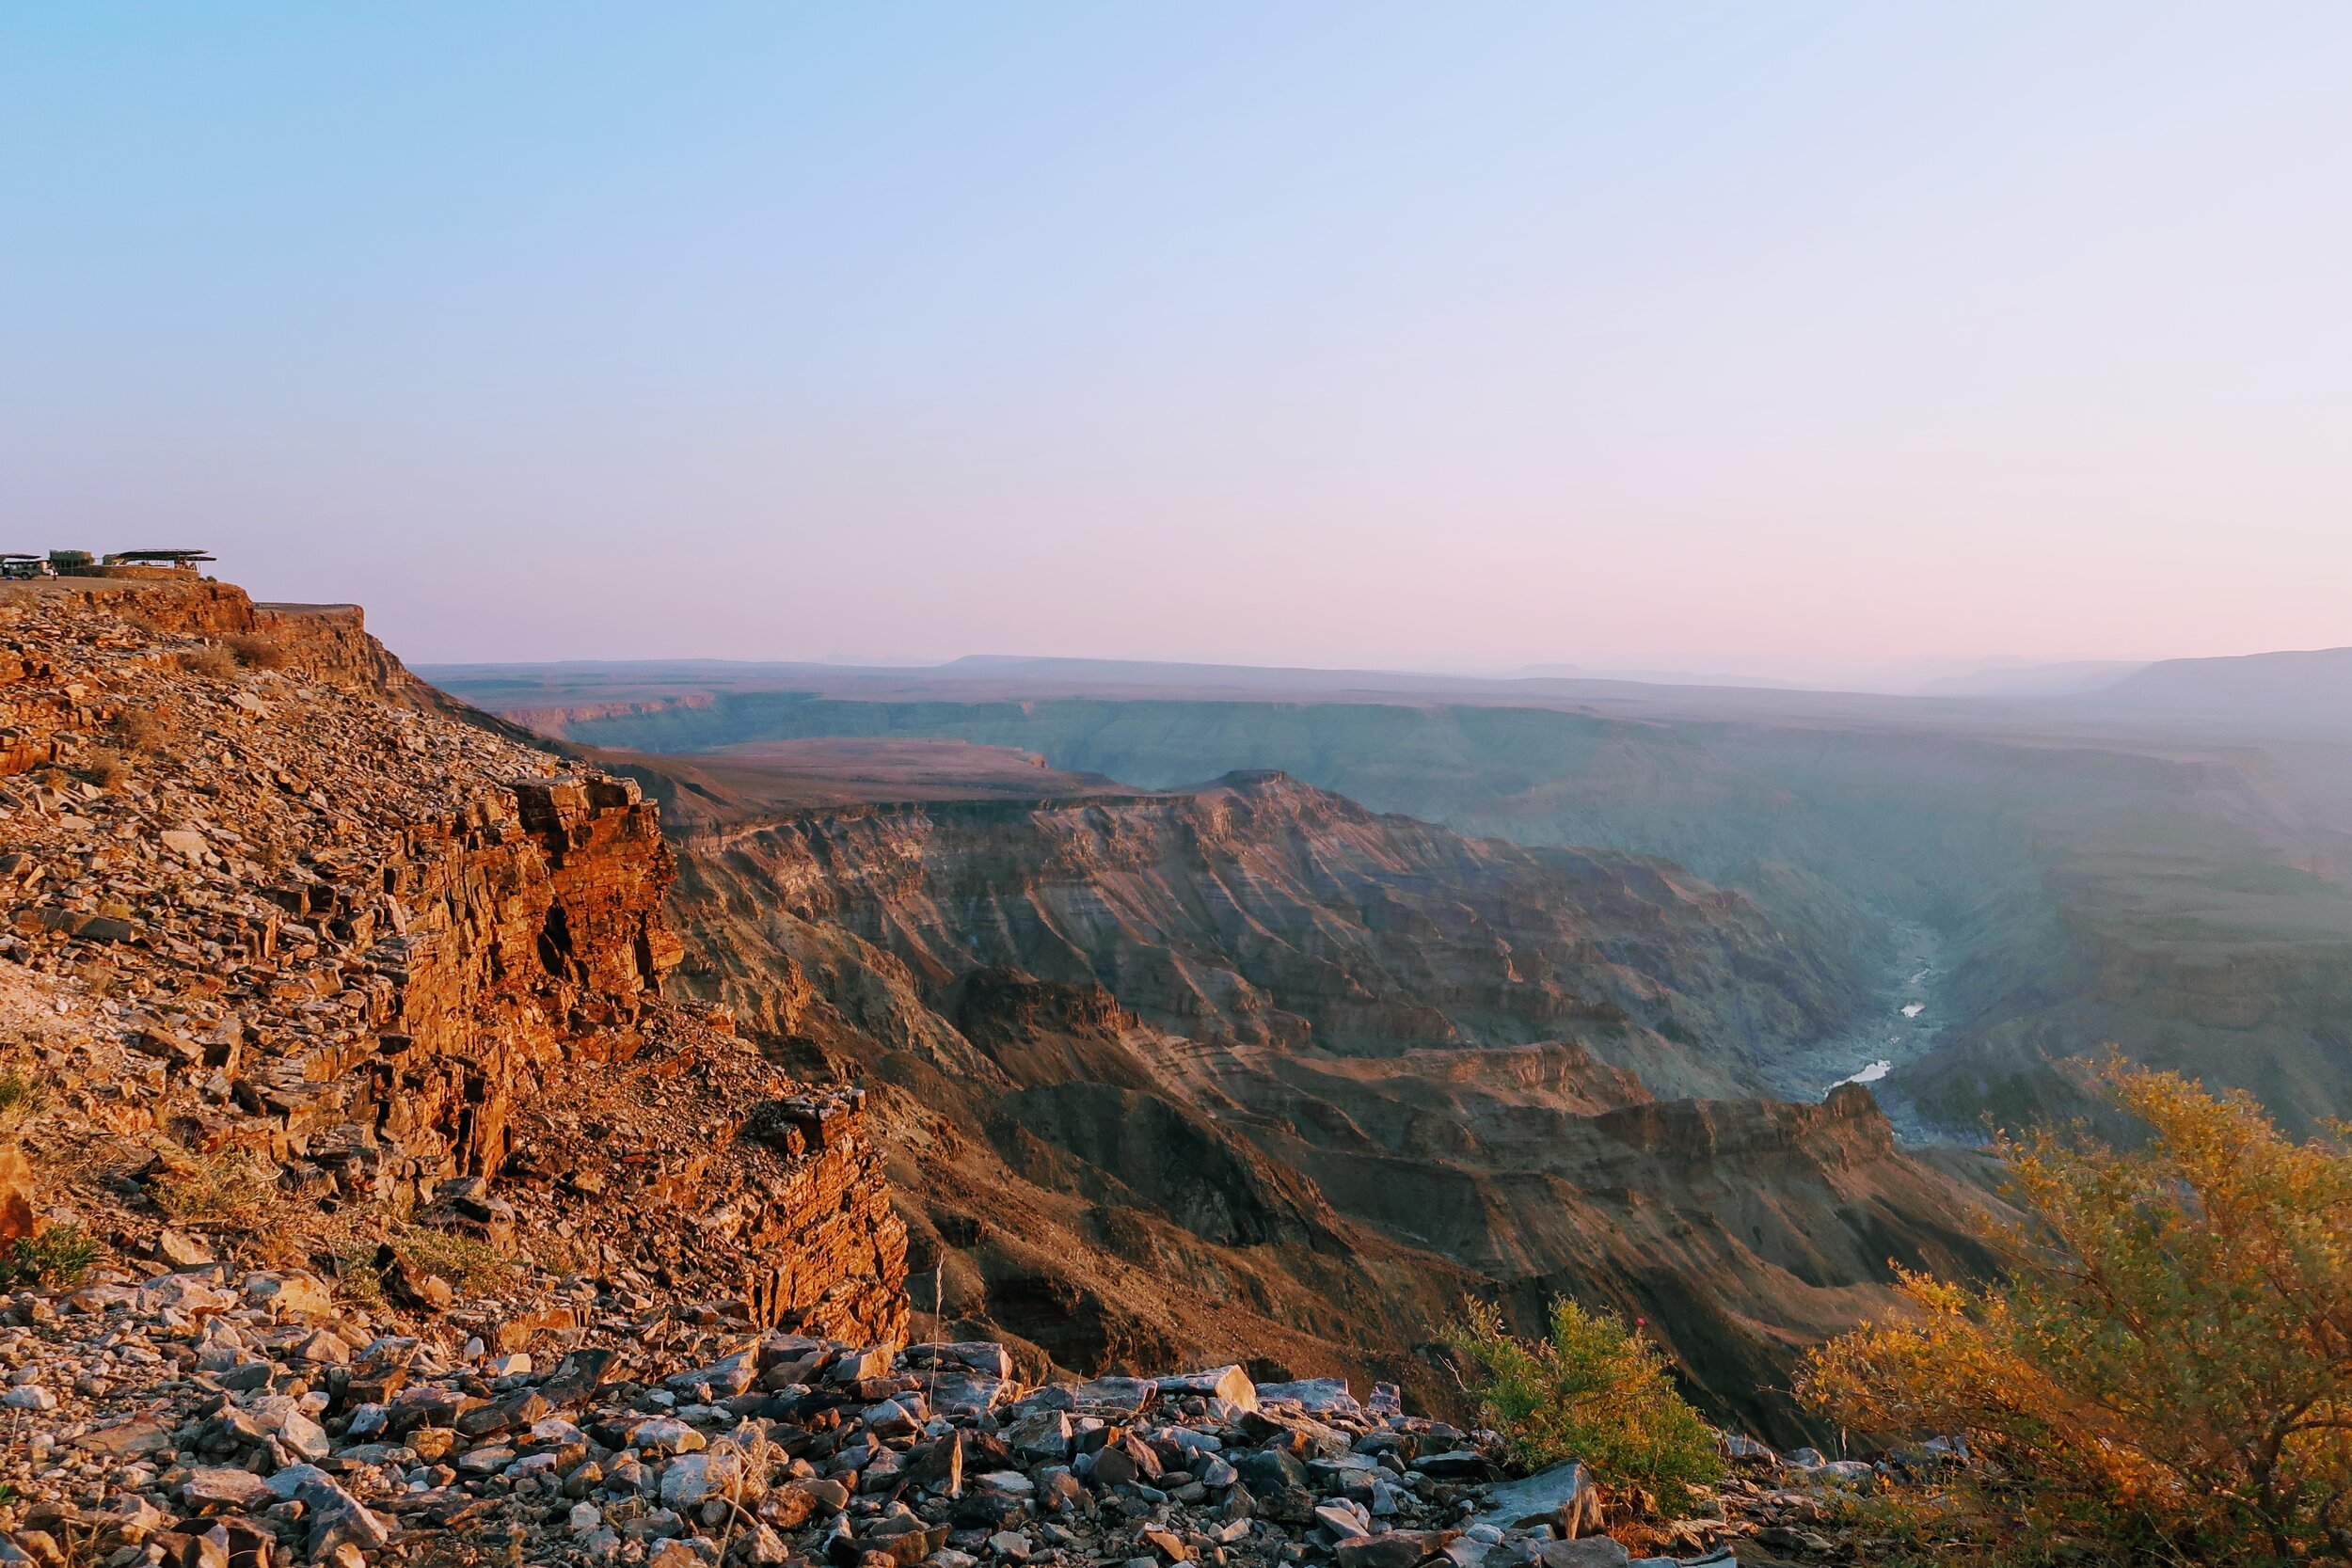 sunset-fish-river-canyon-namibia-experience